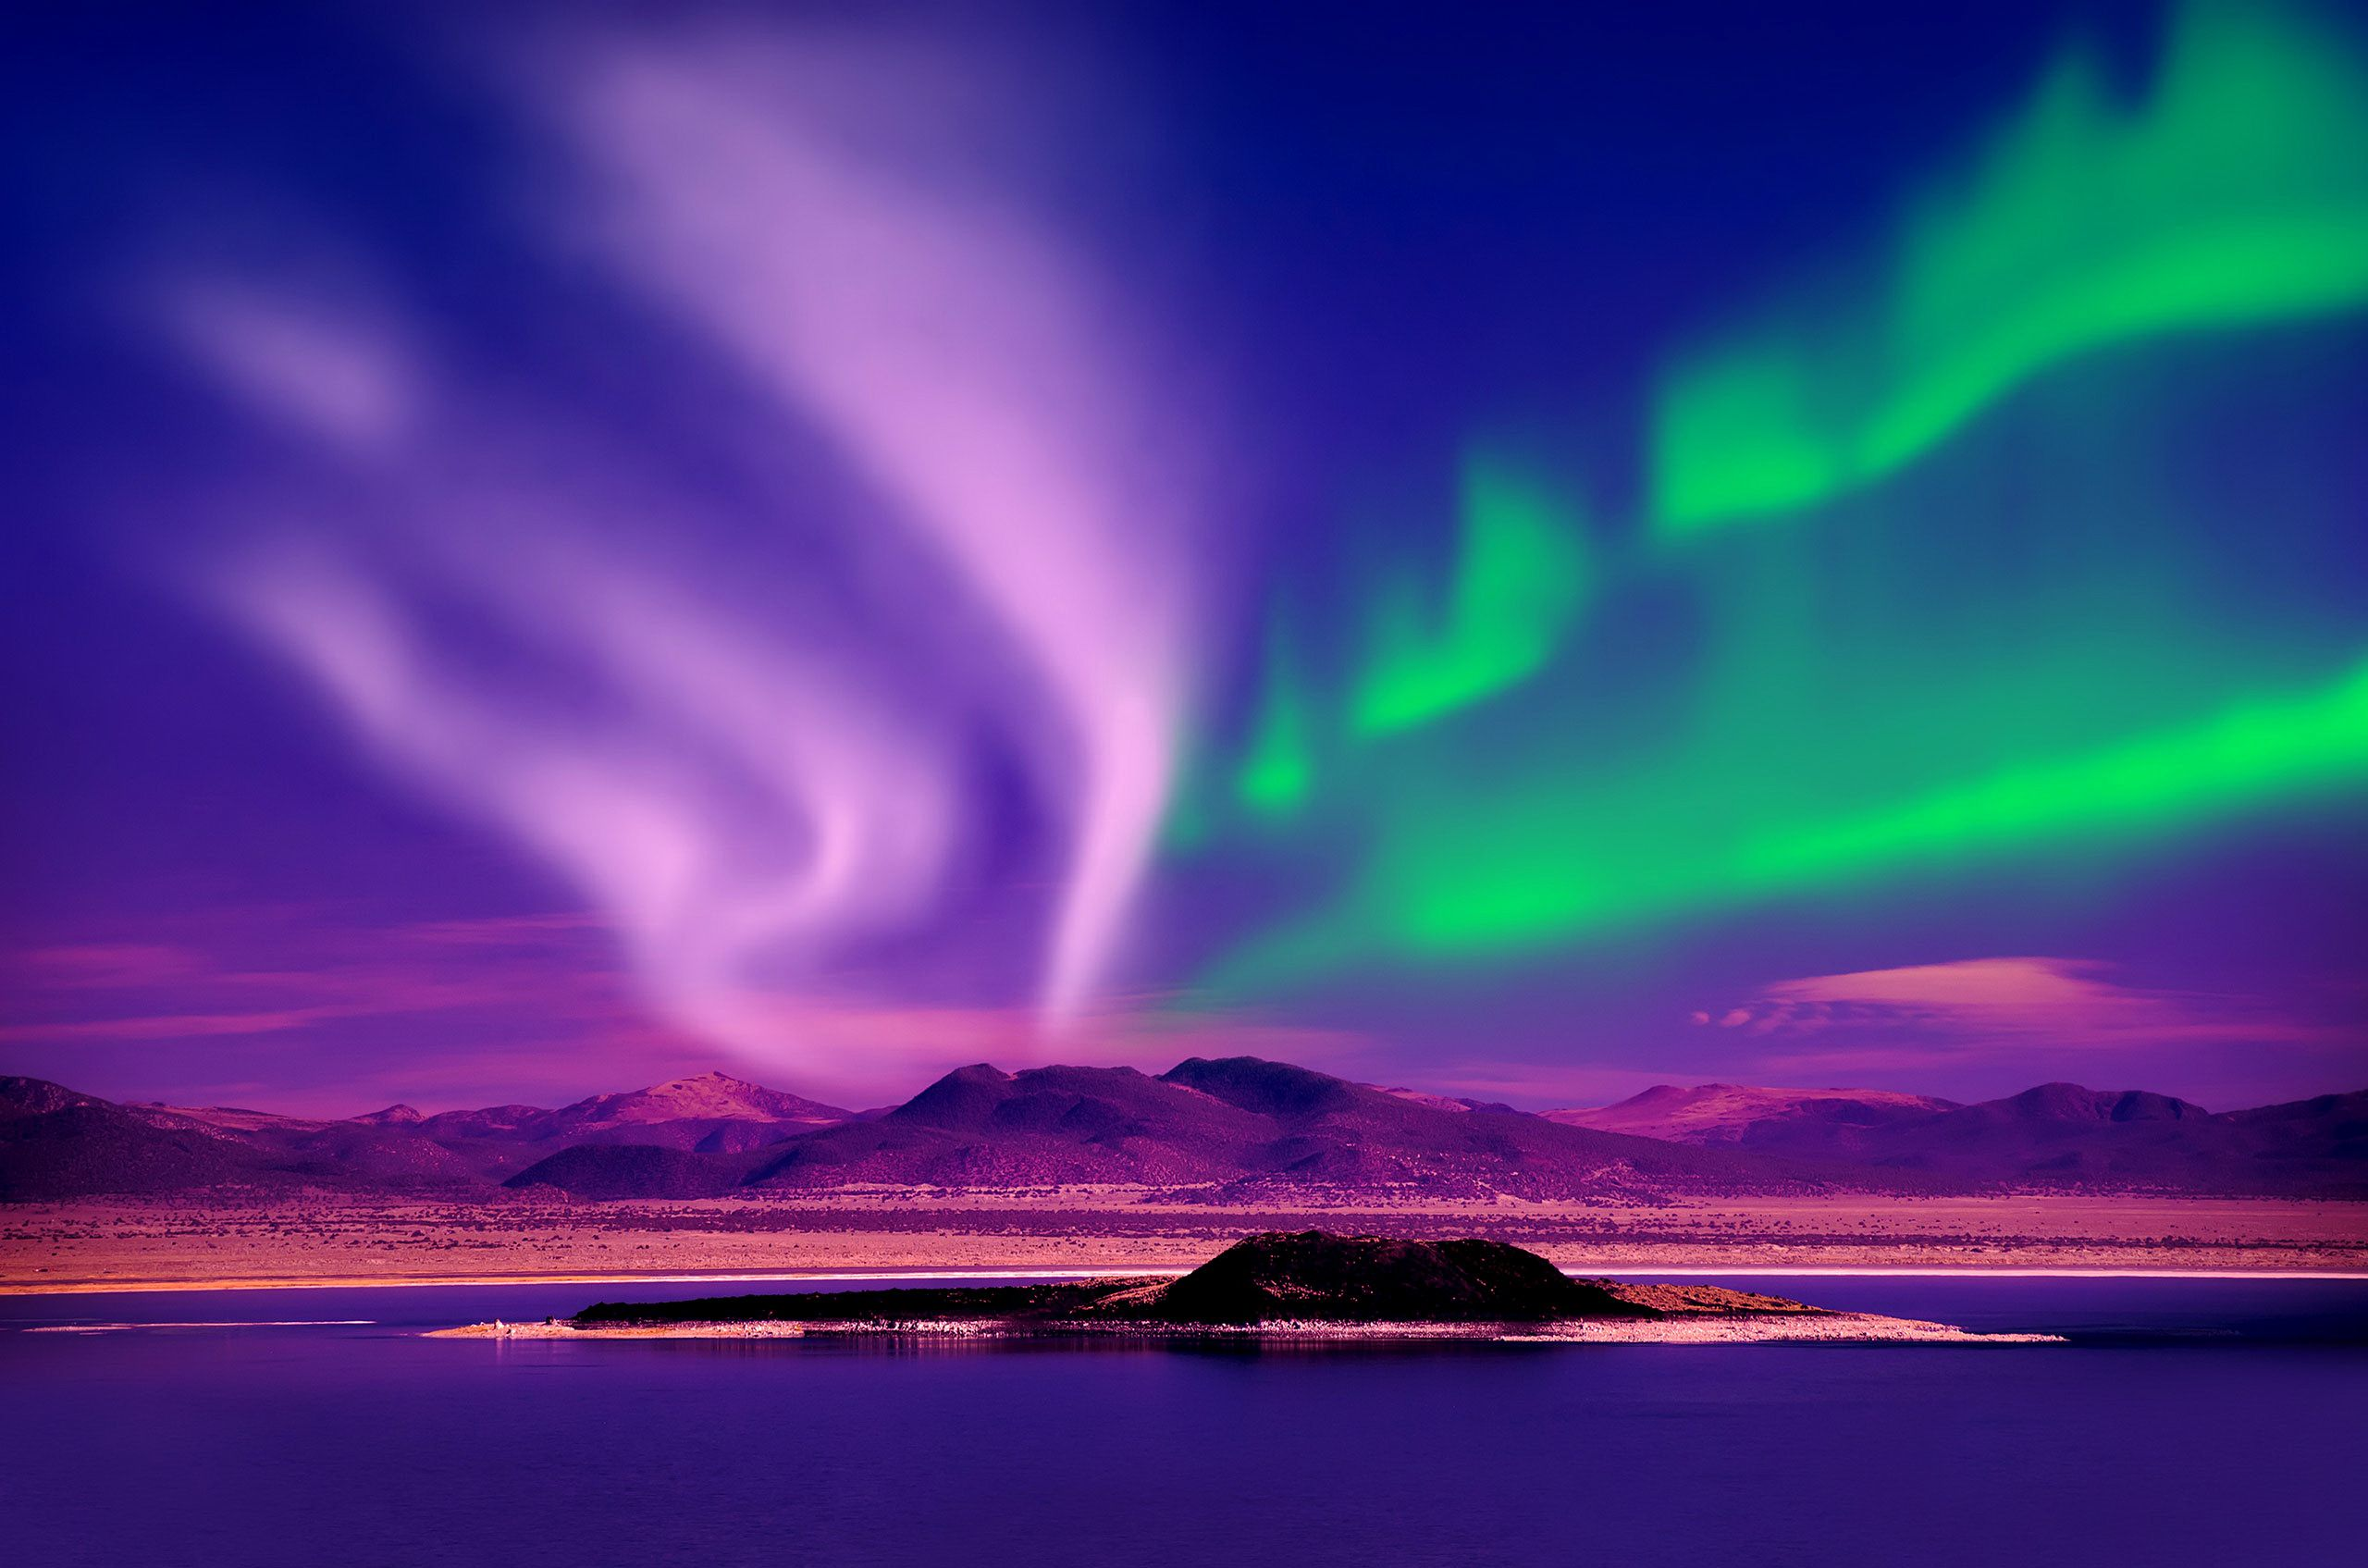 Purple Northern Lights Wallpaper Free 0xk0l 2560x1695 px